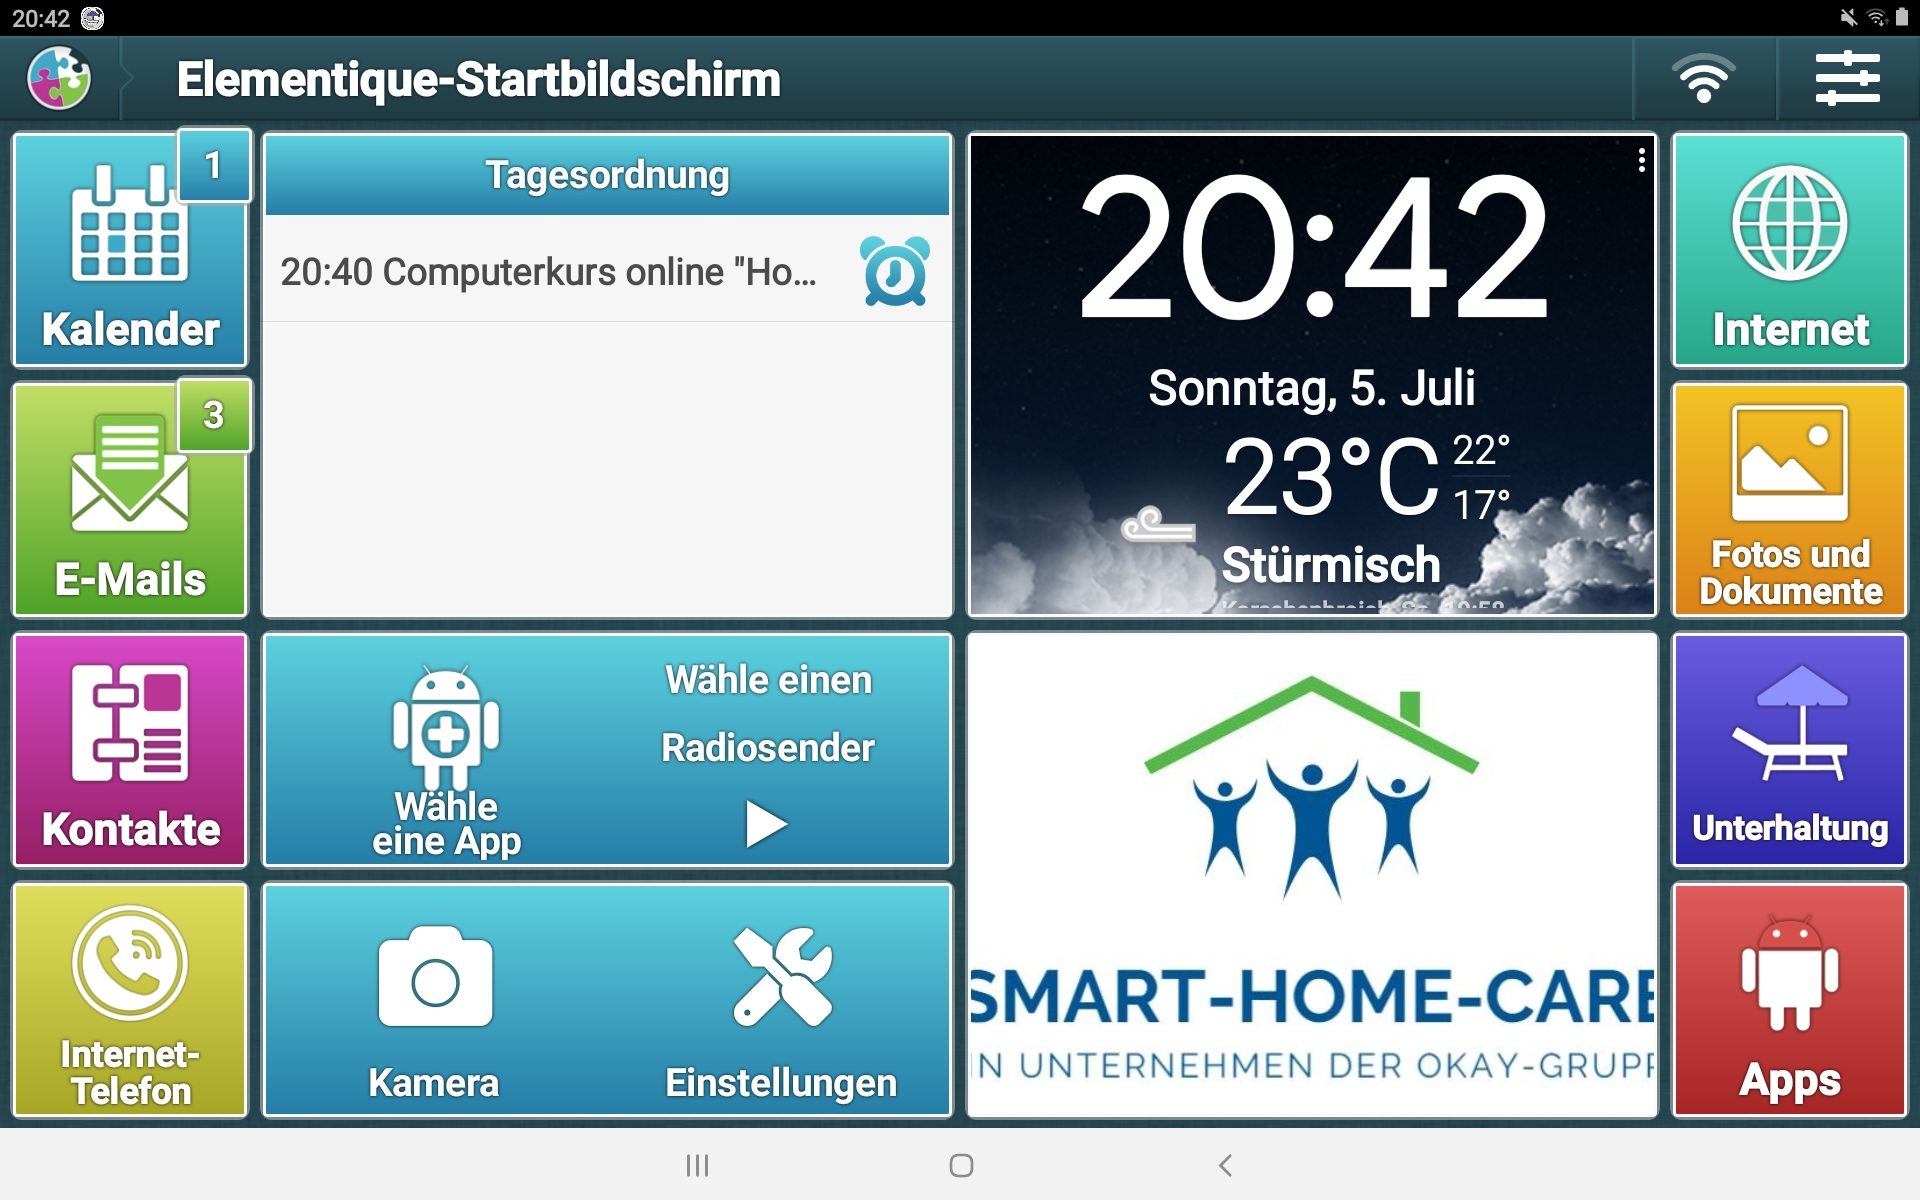 Logo Smart-Home-Care